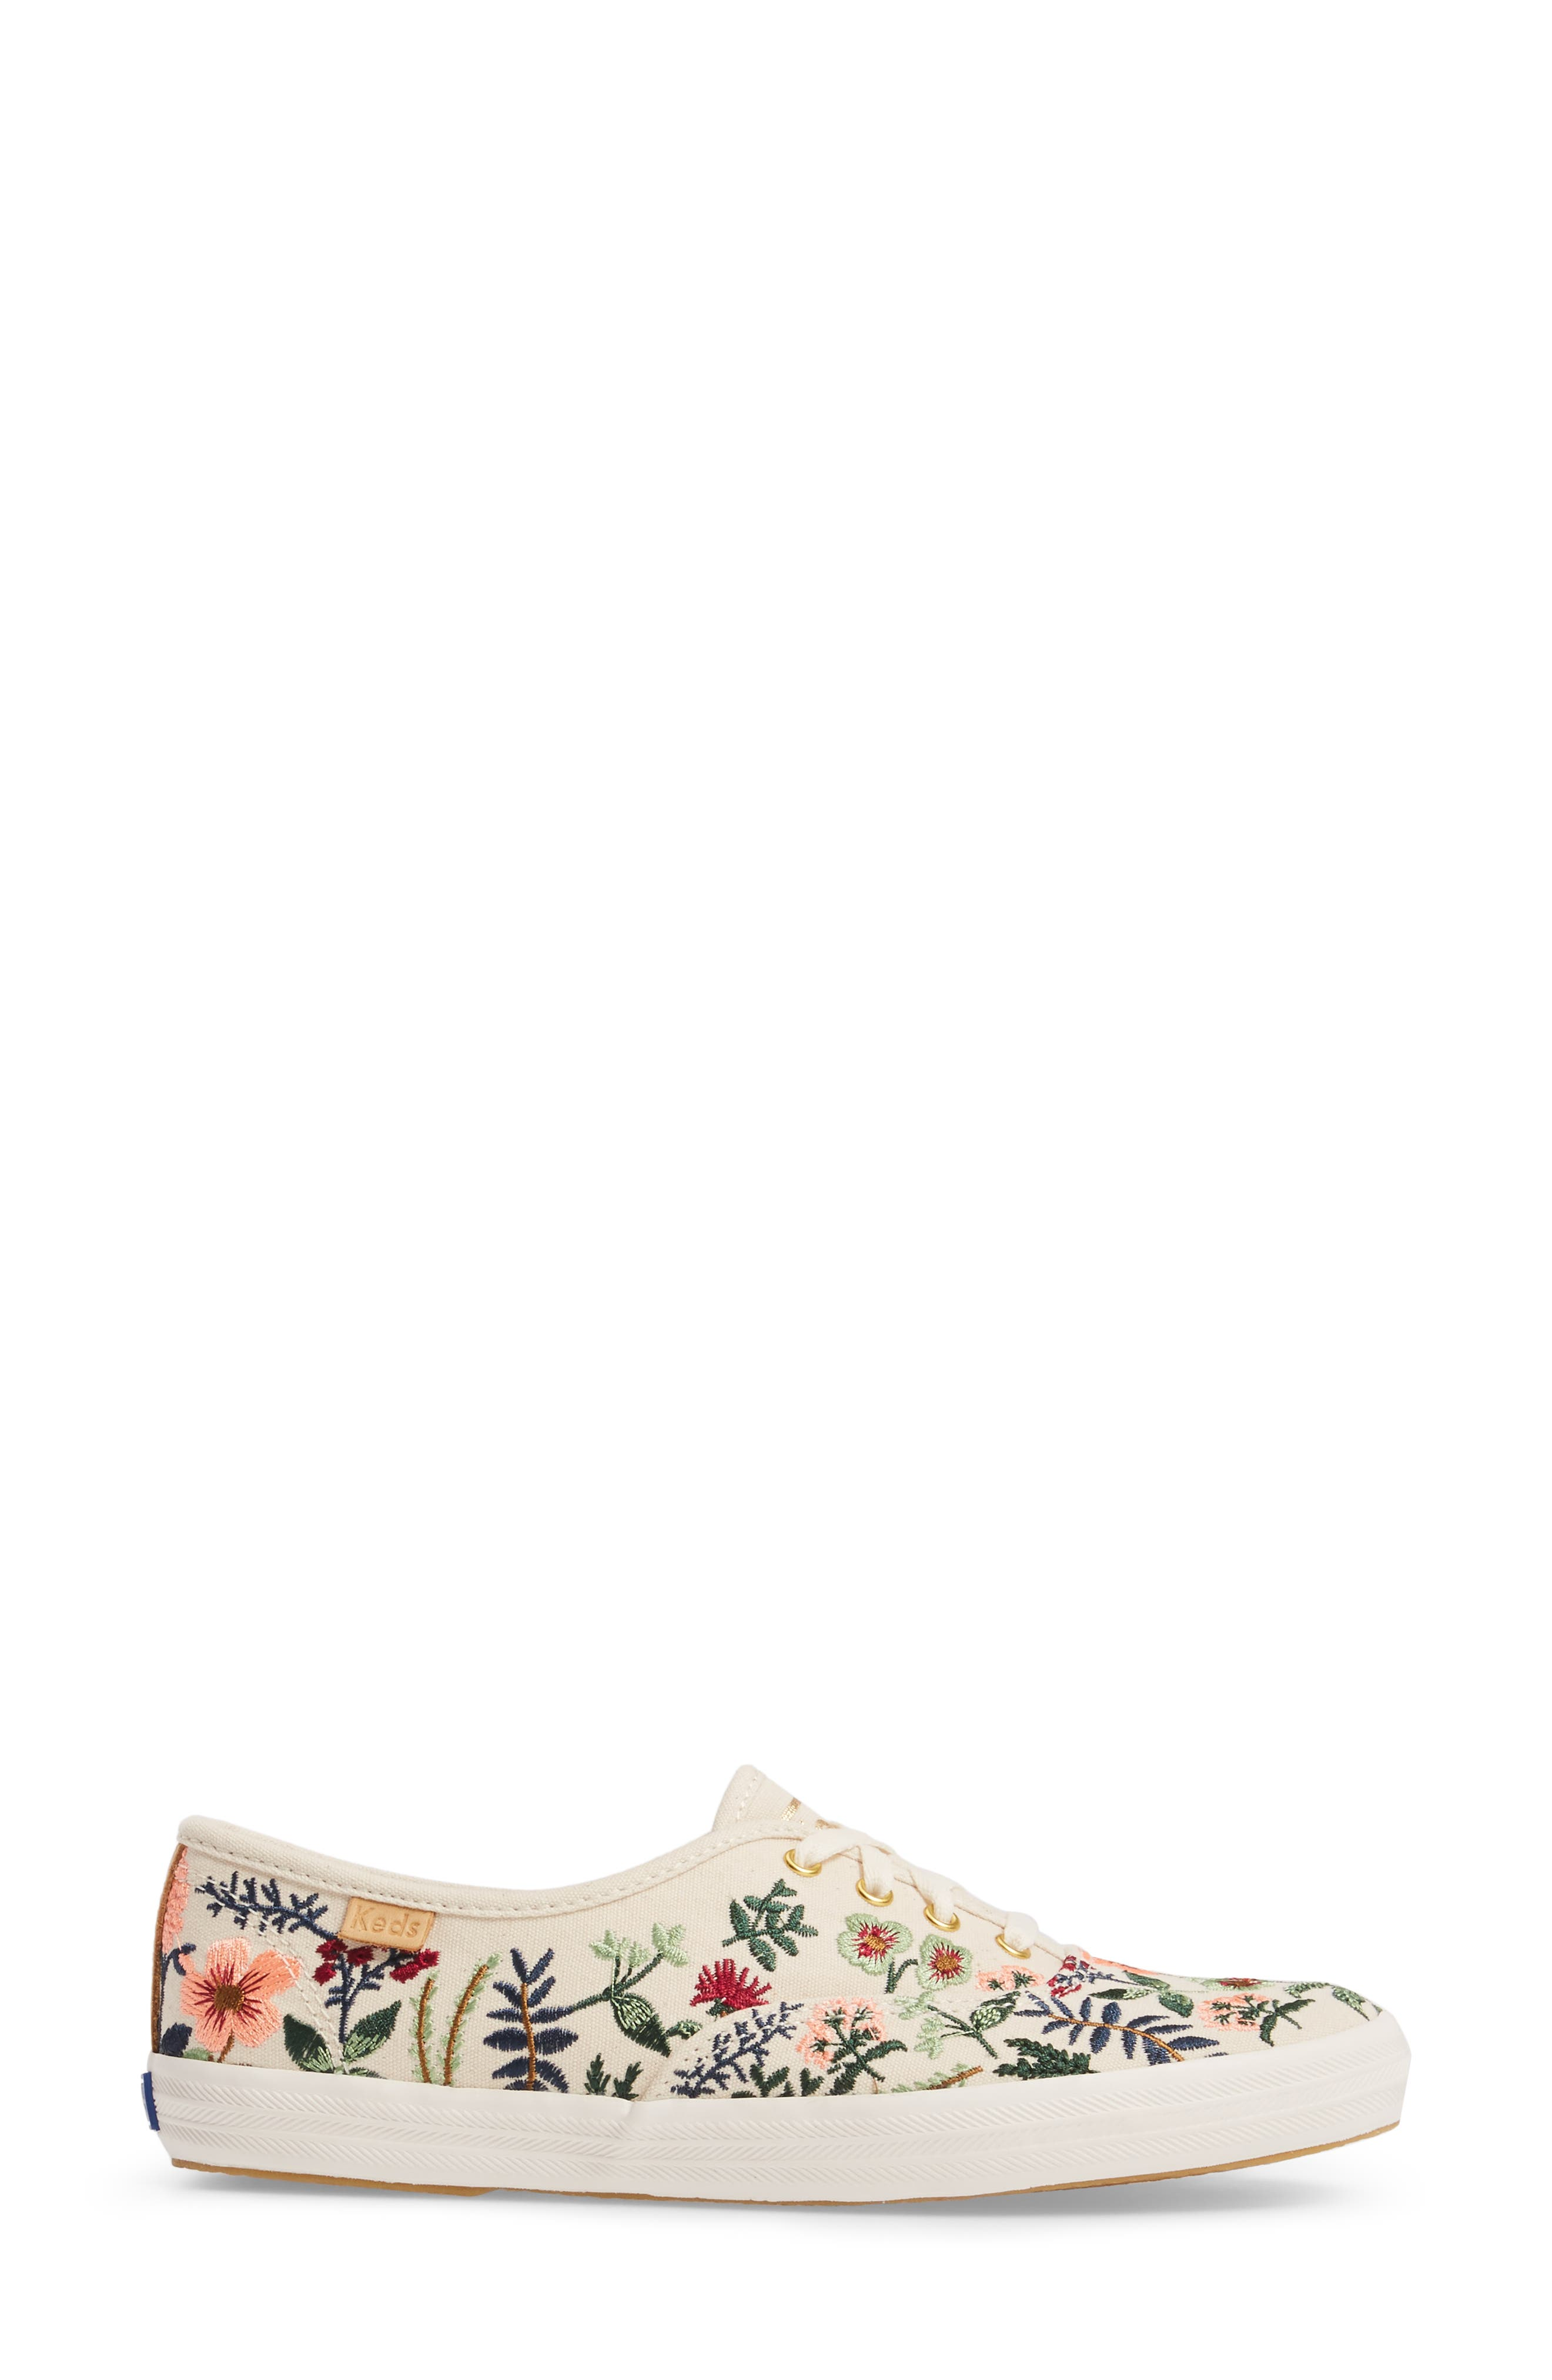 Alternate Image 3  - Keds® x Rifle Paper Co. Herb Garden Embroidered Sneaker (Women)